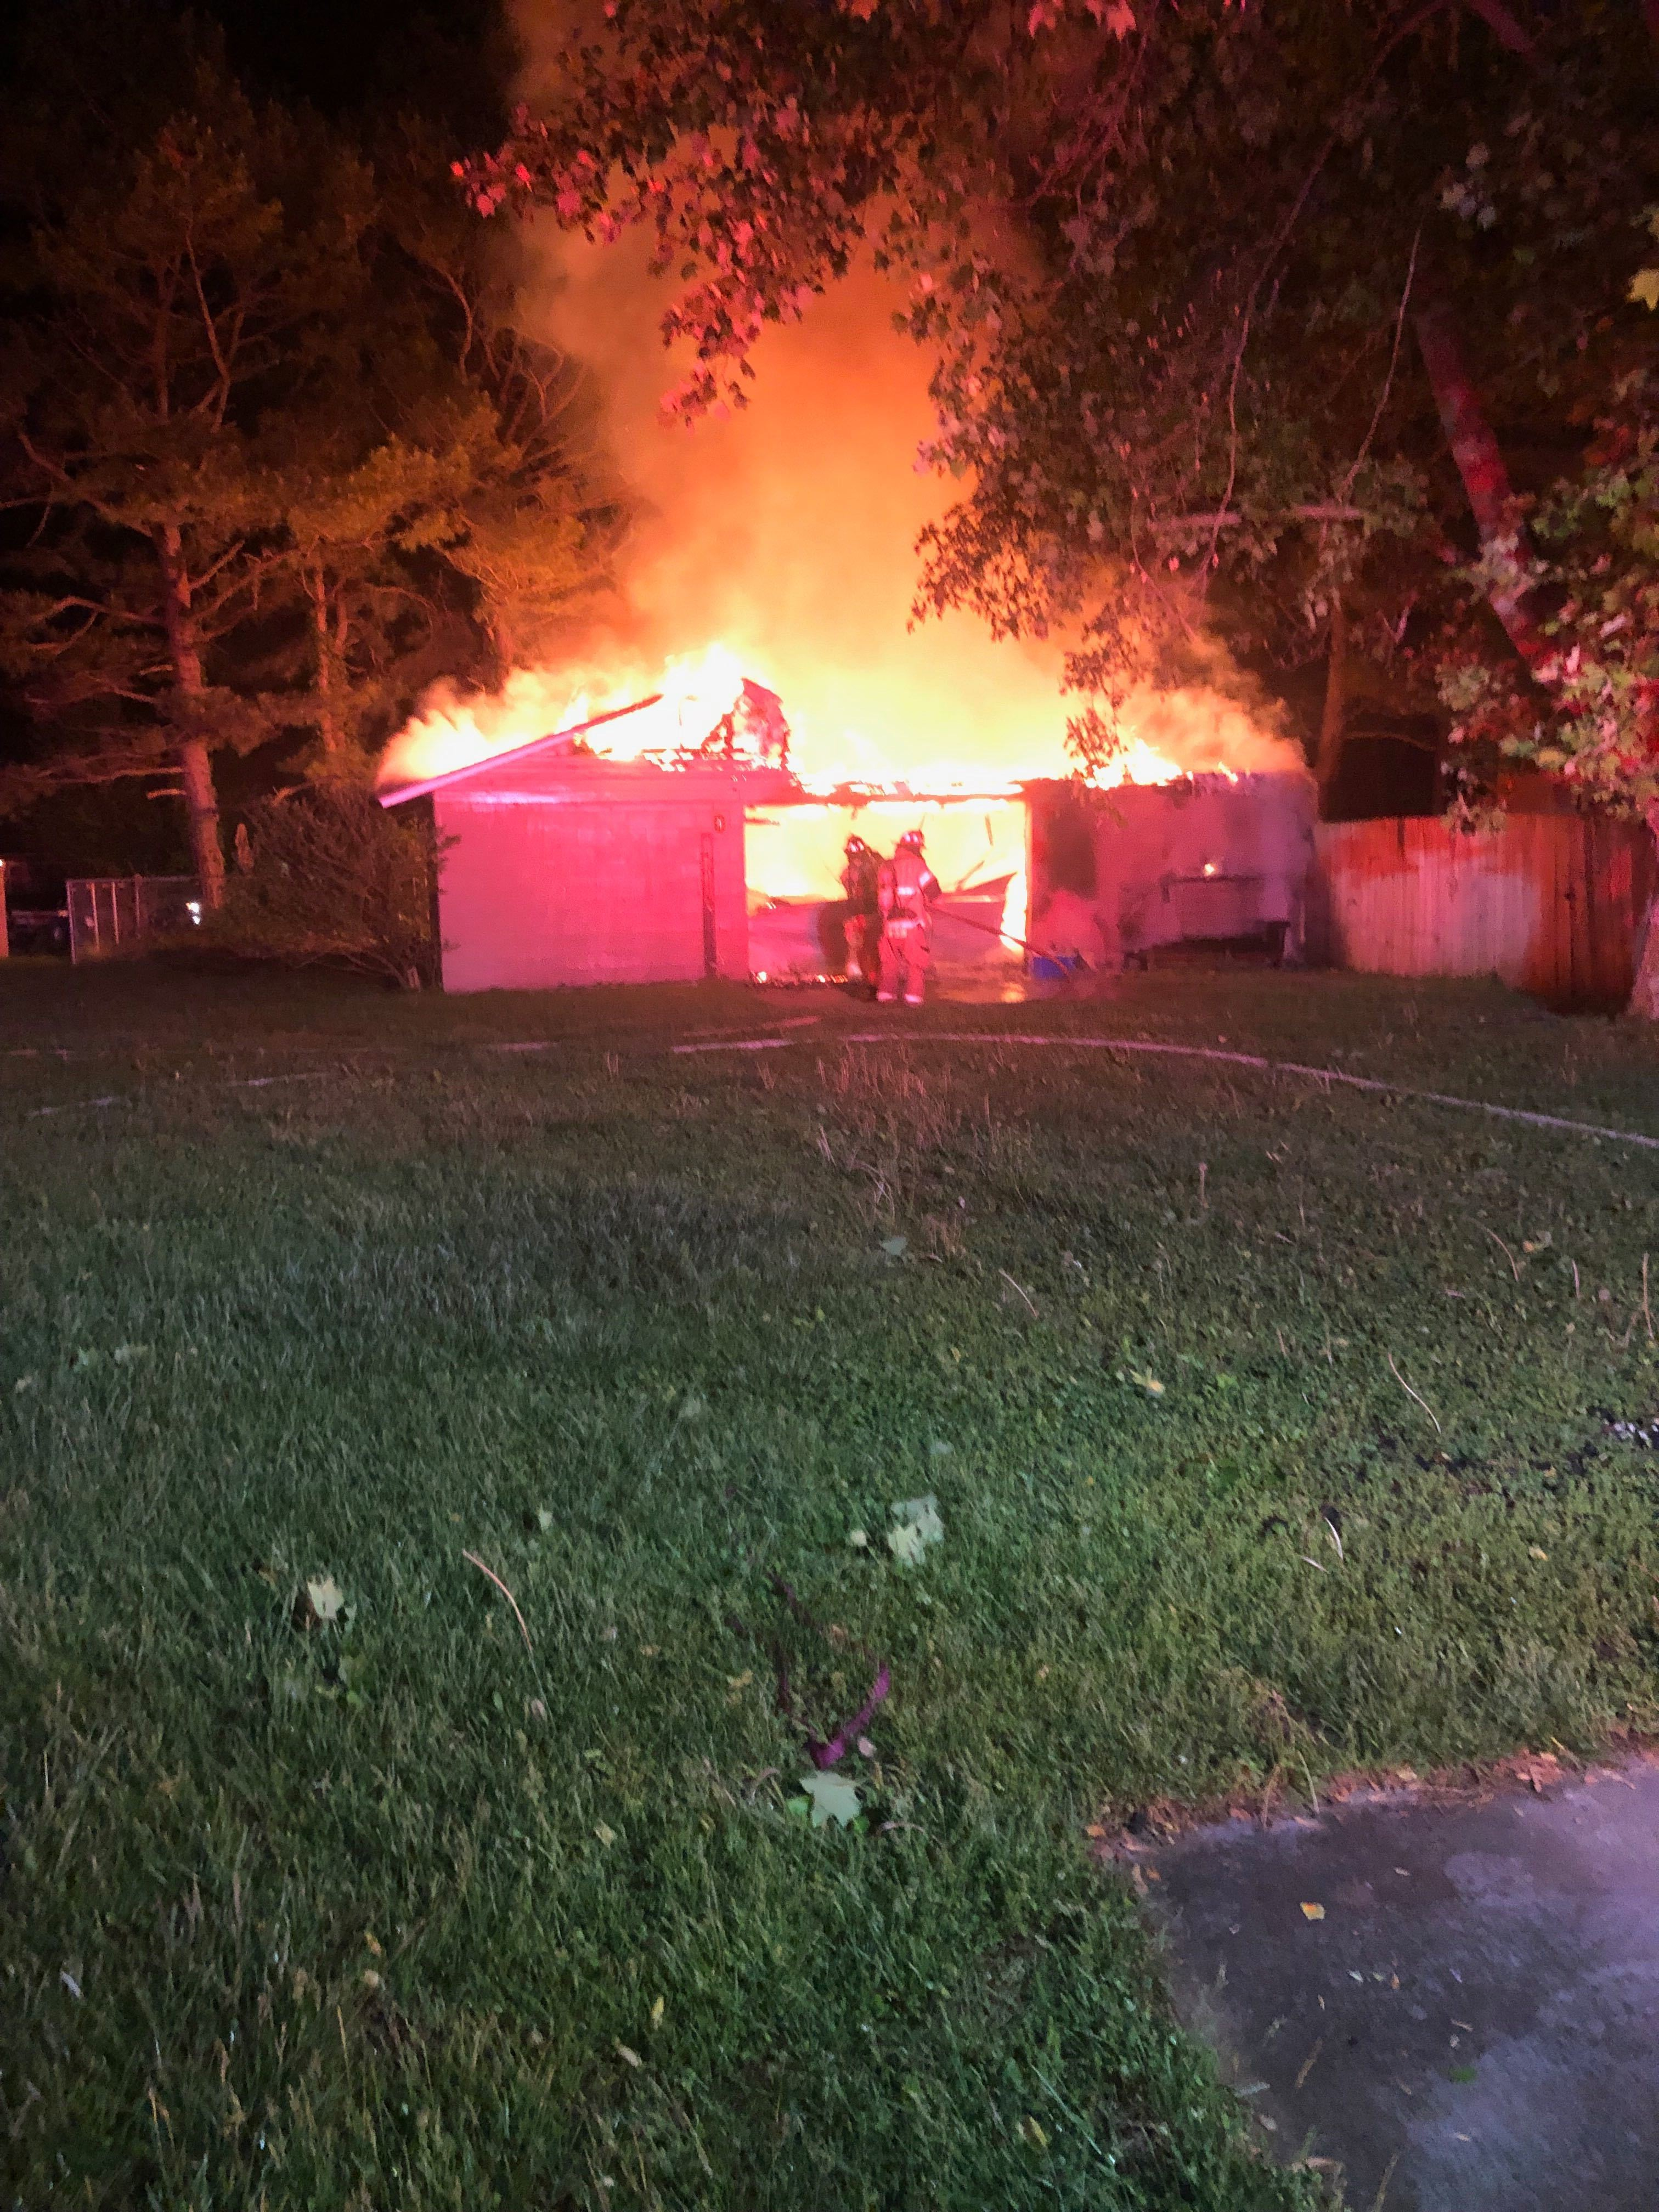 An early-morning fire destroyed a detached garage on North Killdeer Road in Rogers on Thursday, May 2, 2019. (Courtesy of the Rogers Fire Department)